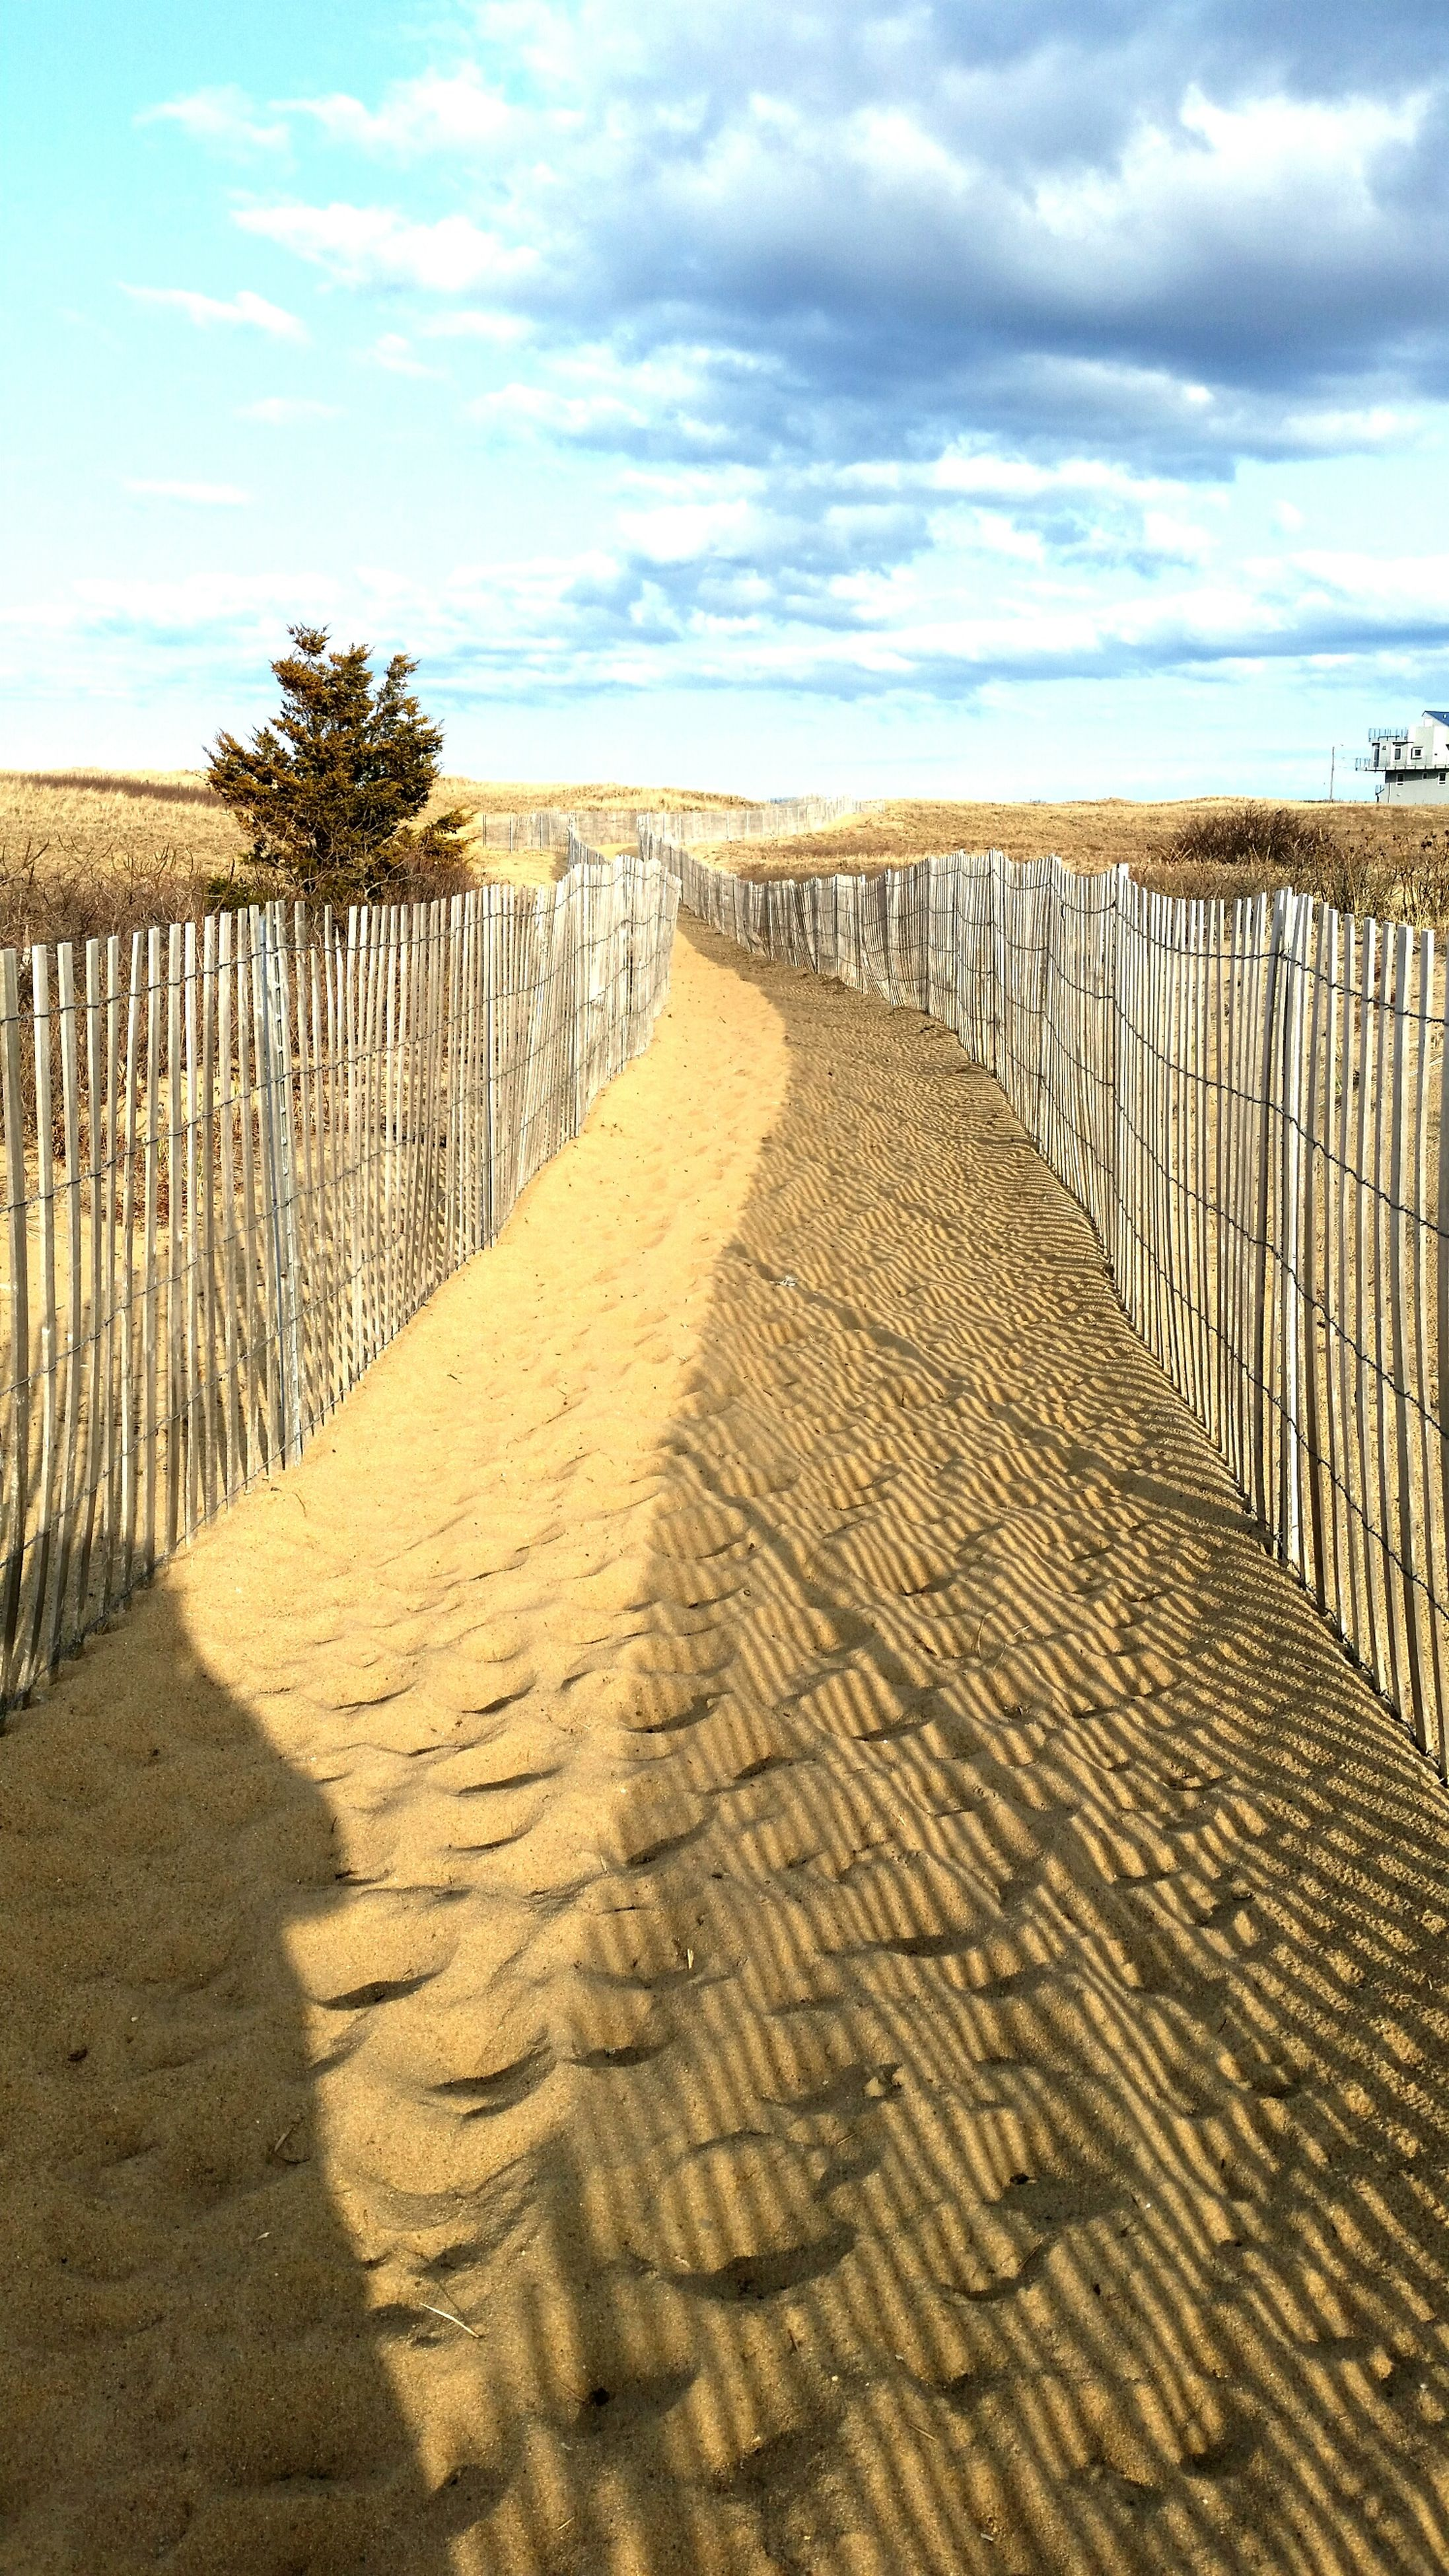 beach, sky, sand, the way forward, sea, tranquility, tranquil scene, horizon over water, diminishing perspective, scenics, shore, water, beauty in nature, nature, cloud - sky, boardwalk, cloud, vanishing point, idyllic, in a row